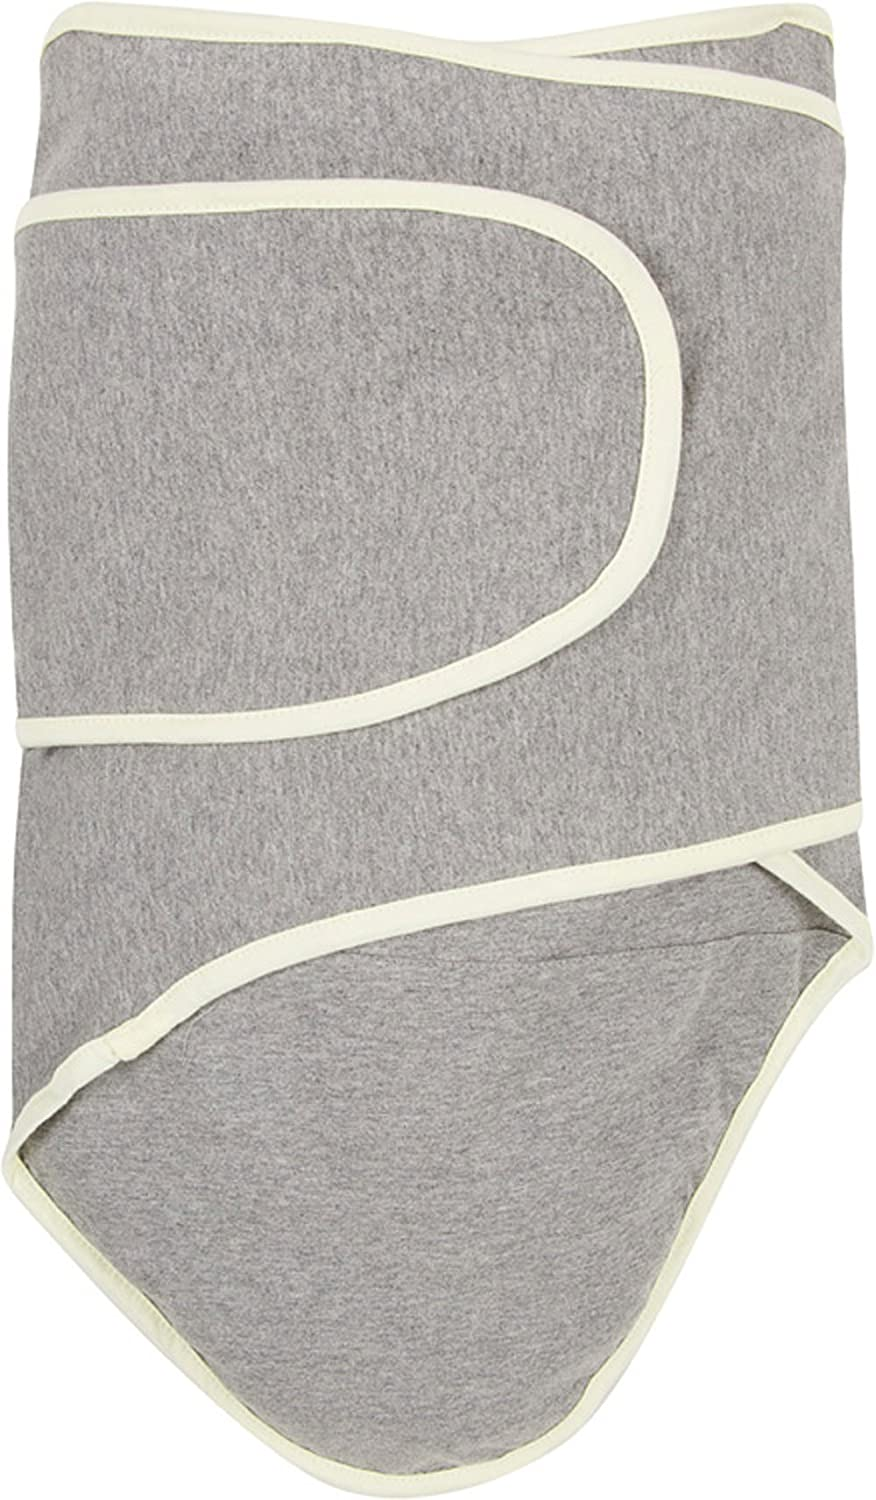 Miracle Blanket Swaddle Unisex Baby, Grey with Yellow Trim